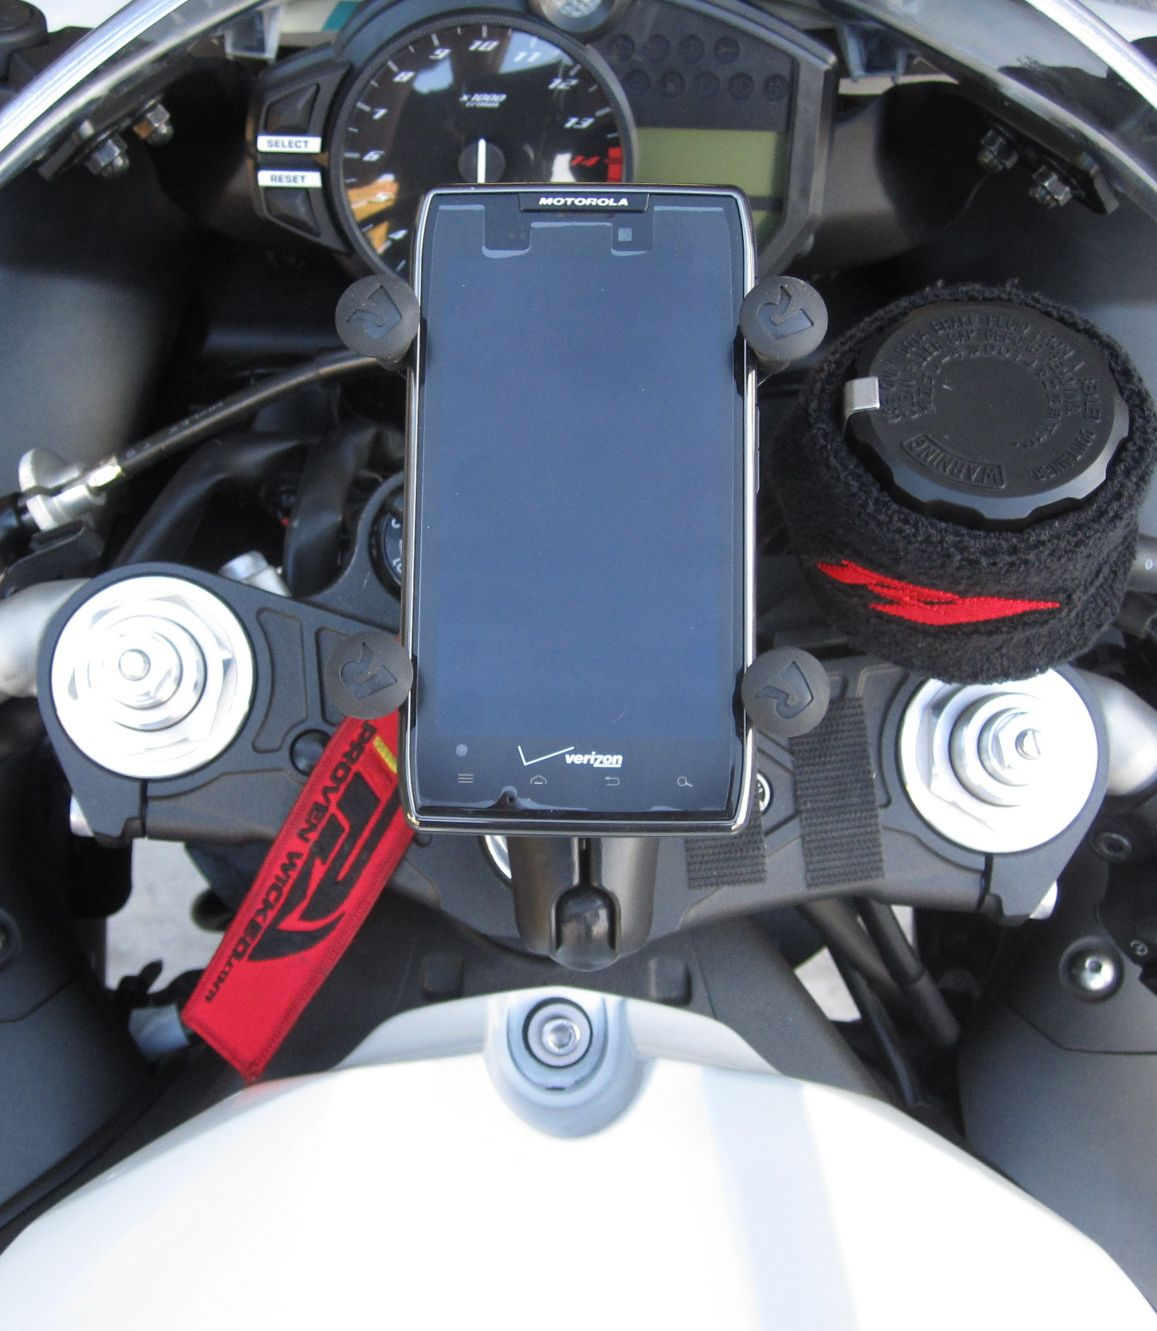 2010 YAMAHA R1  X GRIP WITH CELL PHONE MOUNT